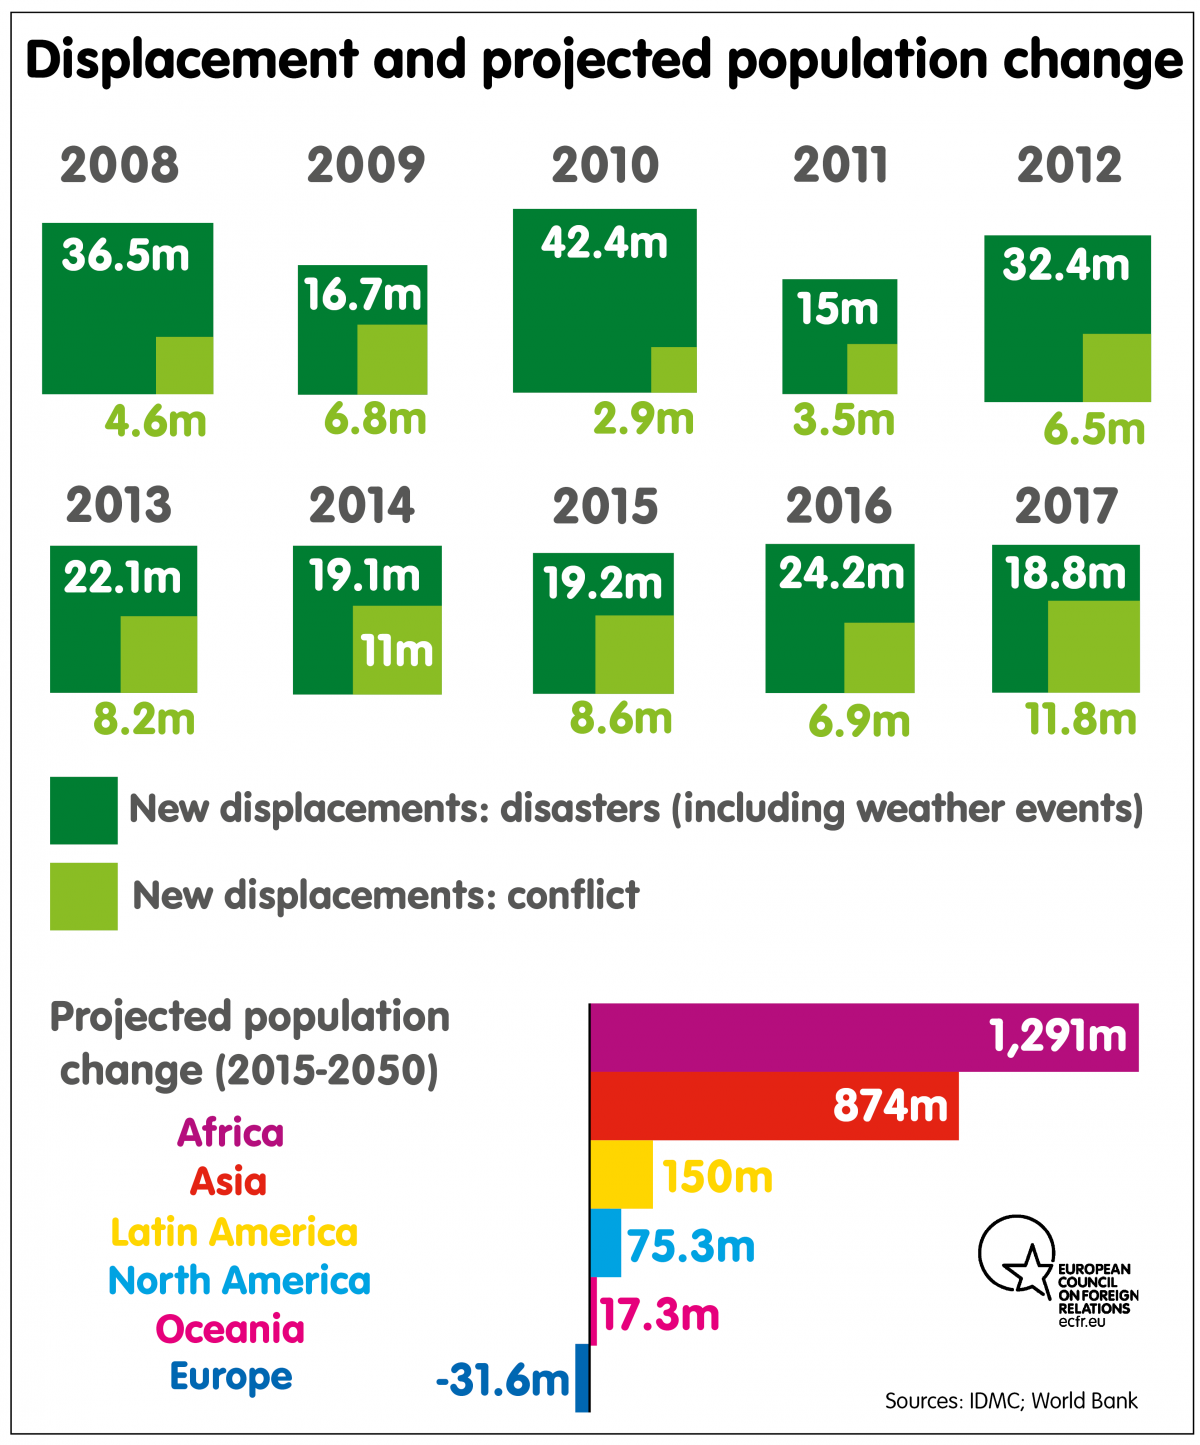 Displacement and projected population change